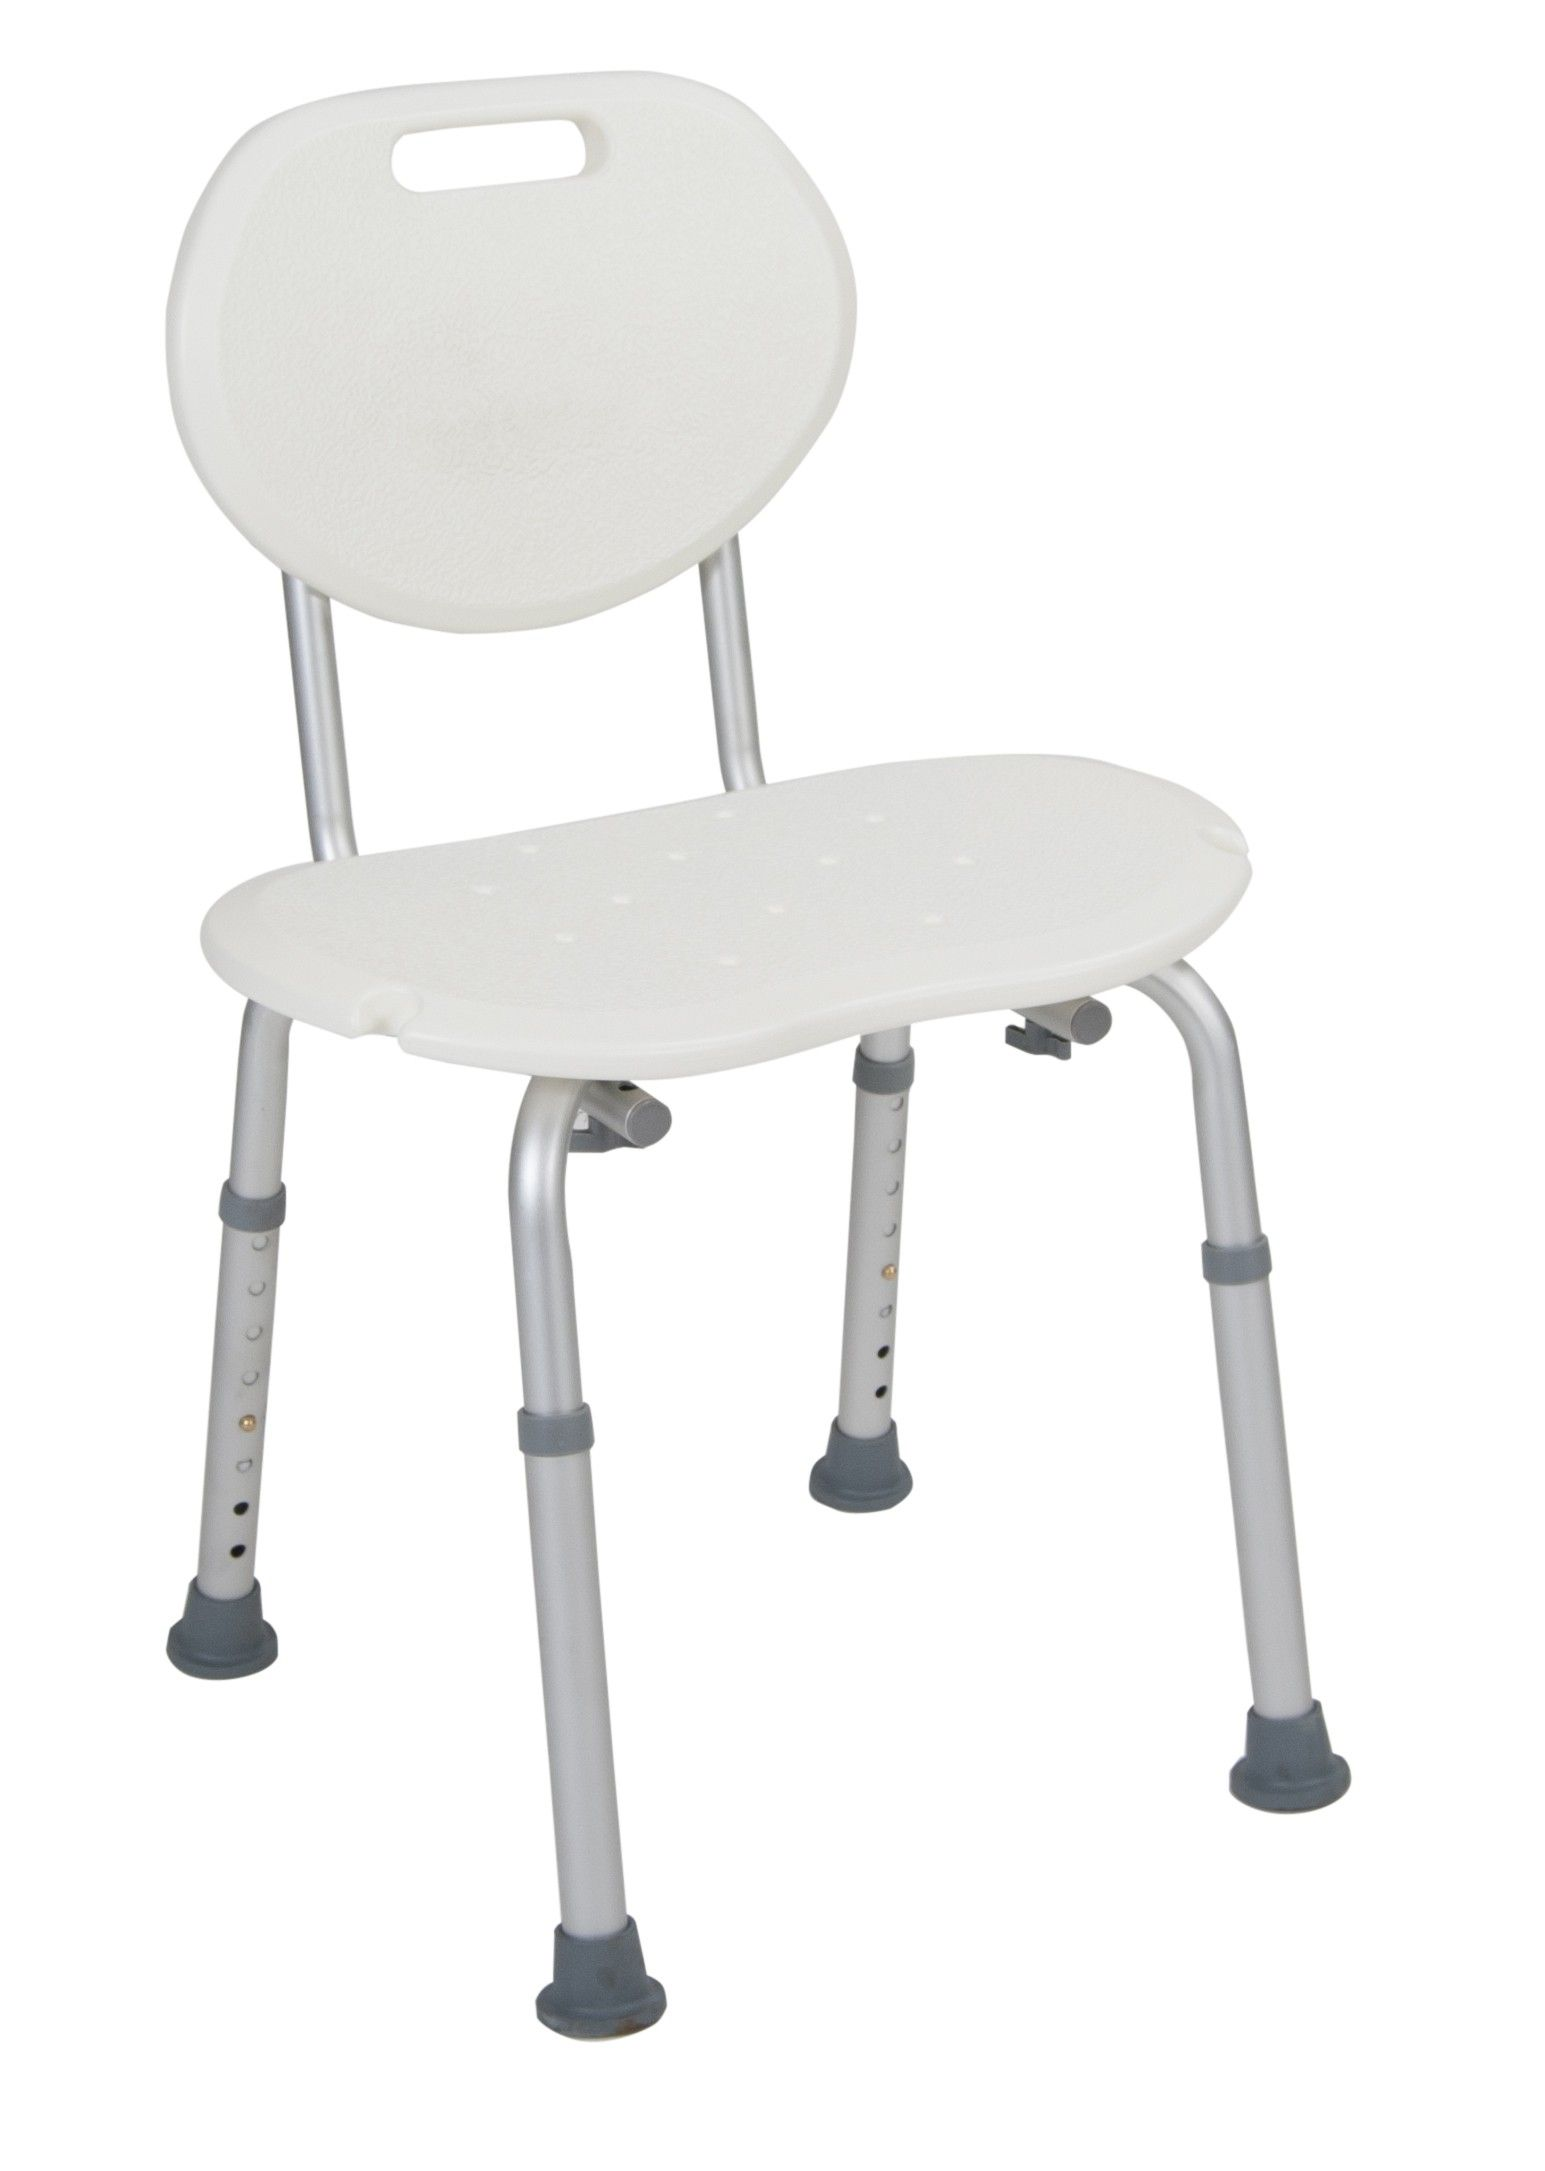 Comfort chairs for elderly, handicap shower equipment, bathtub for ...